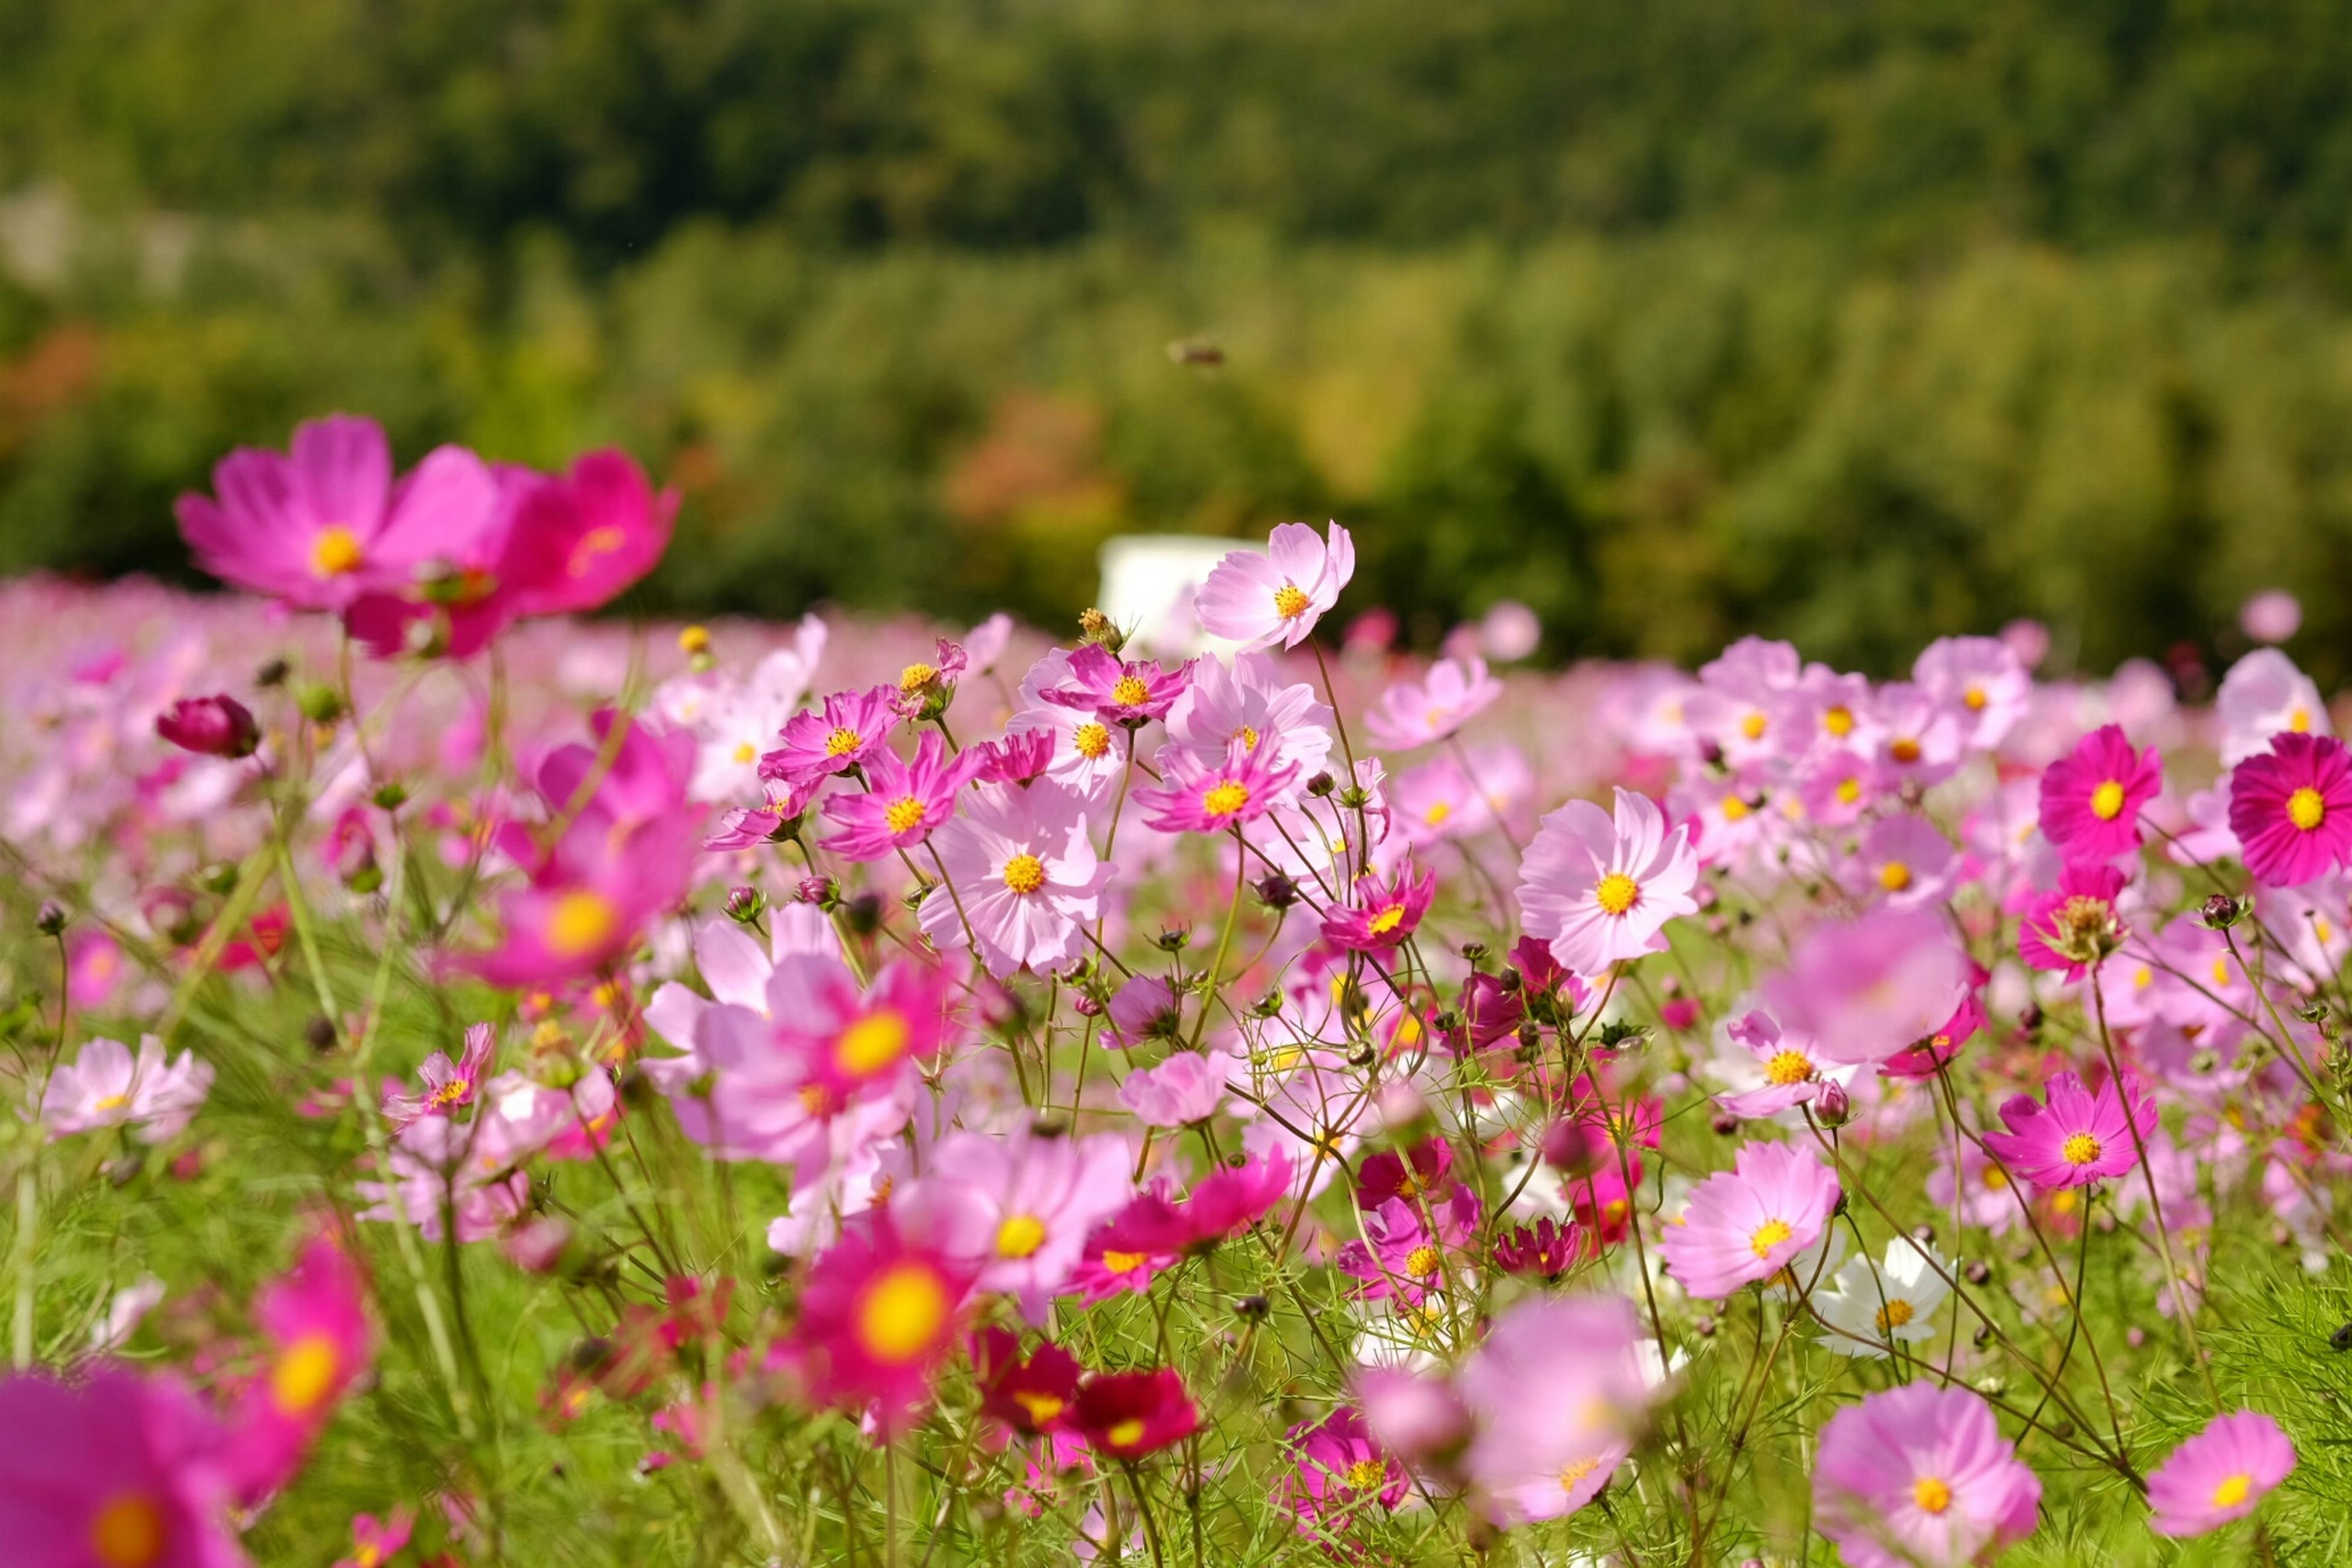 flower, freshness, growth, fragility, beauty in nature, pink color, petal, nature, focus on foreground, blooming, plant, flower head, field, selective focus, in bloom, close-up, stem, blossom, pink, outdoors